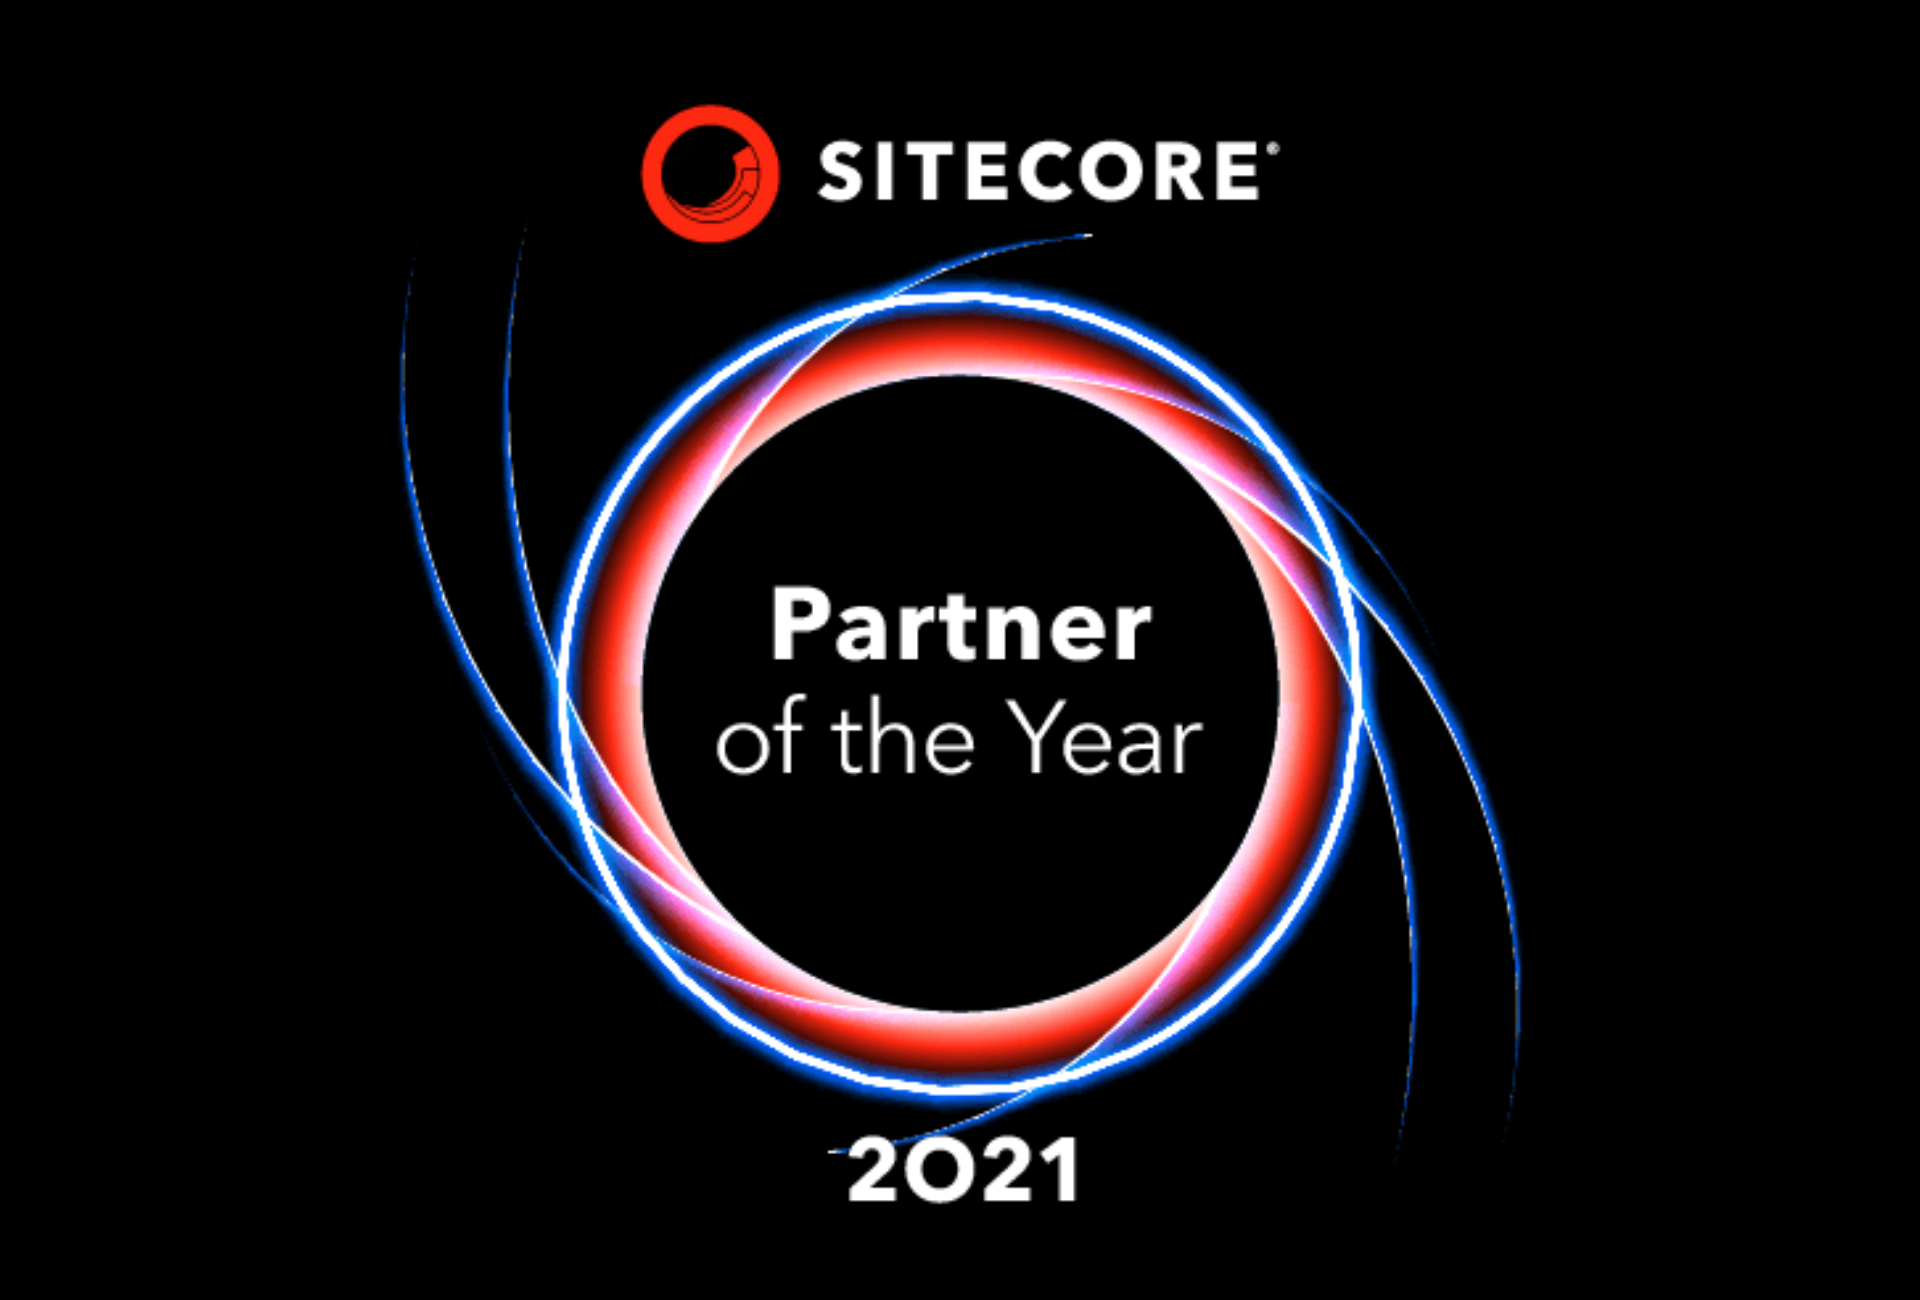 macaw sitecore partner of the year